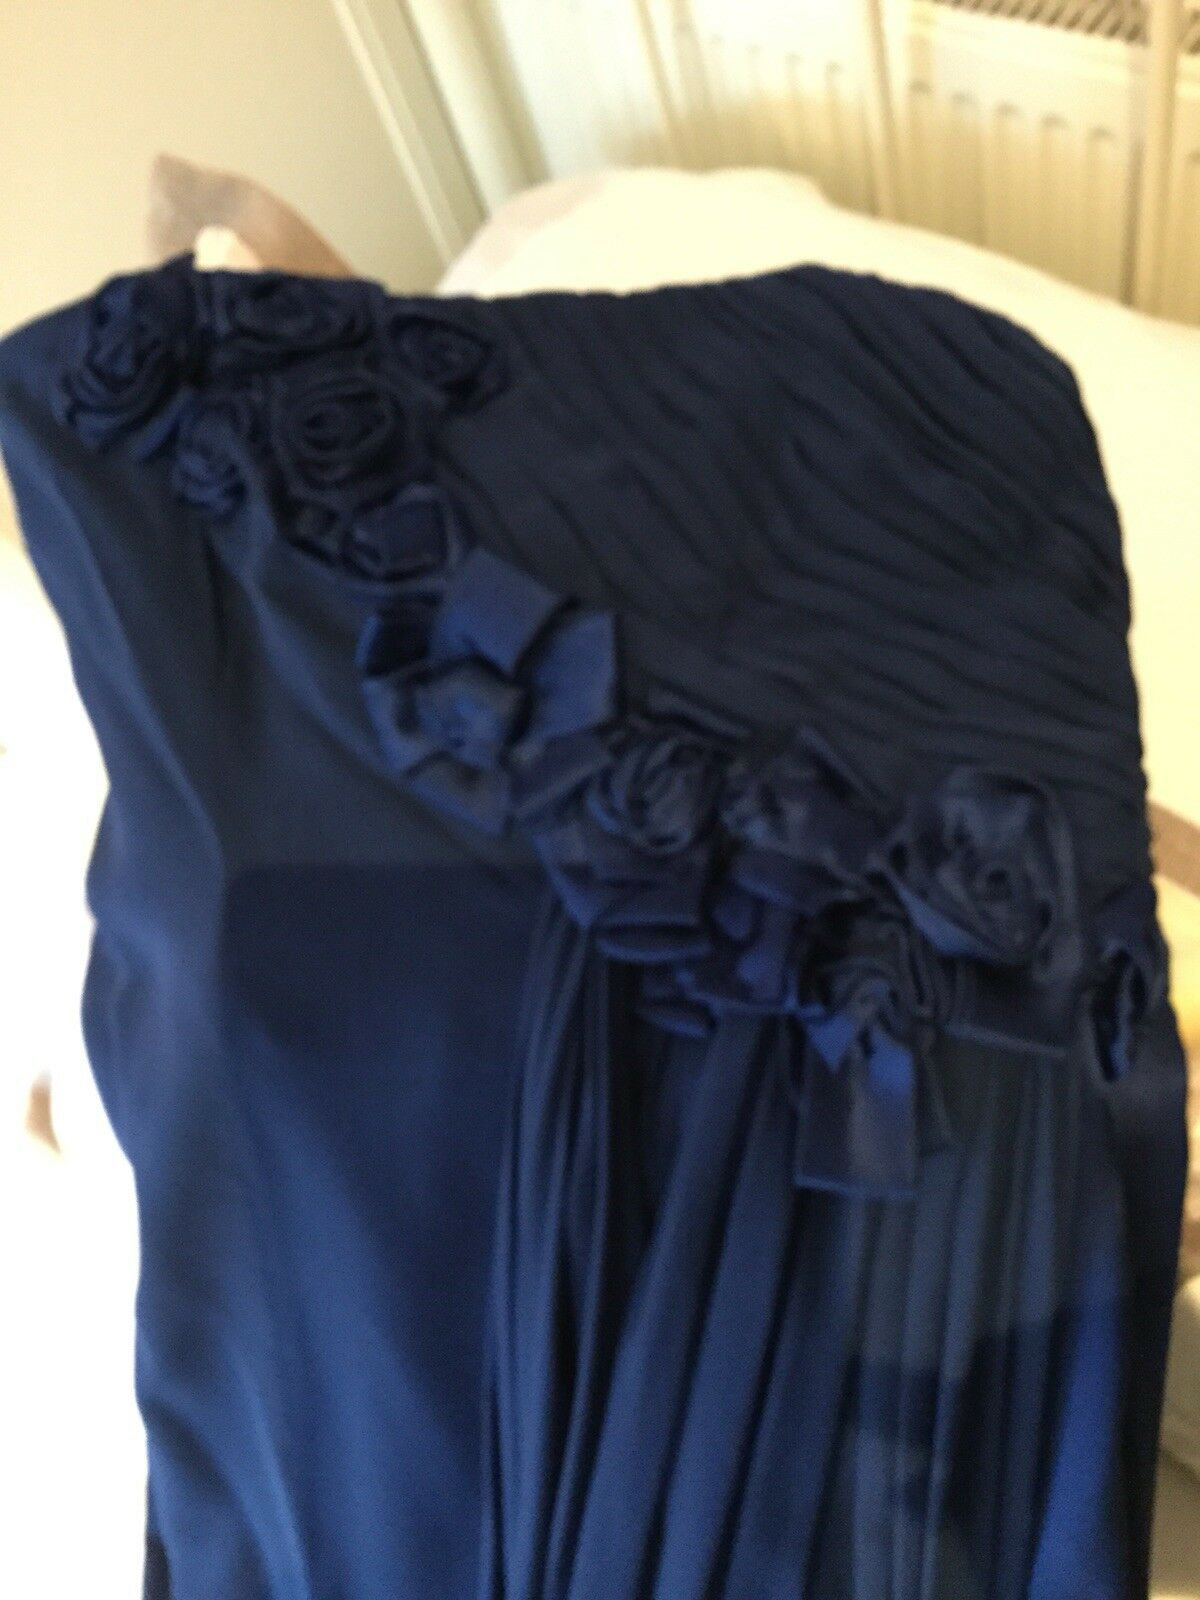 Coast bluee bluee bluee Navy Harmony Dress Size 10 Ballgown, Bridal, Prom, Bridesmaid 0b1497